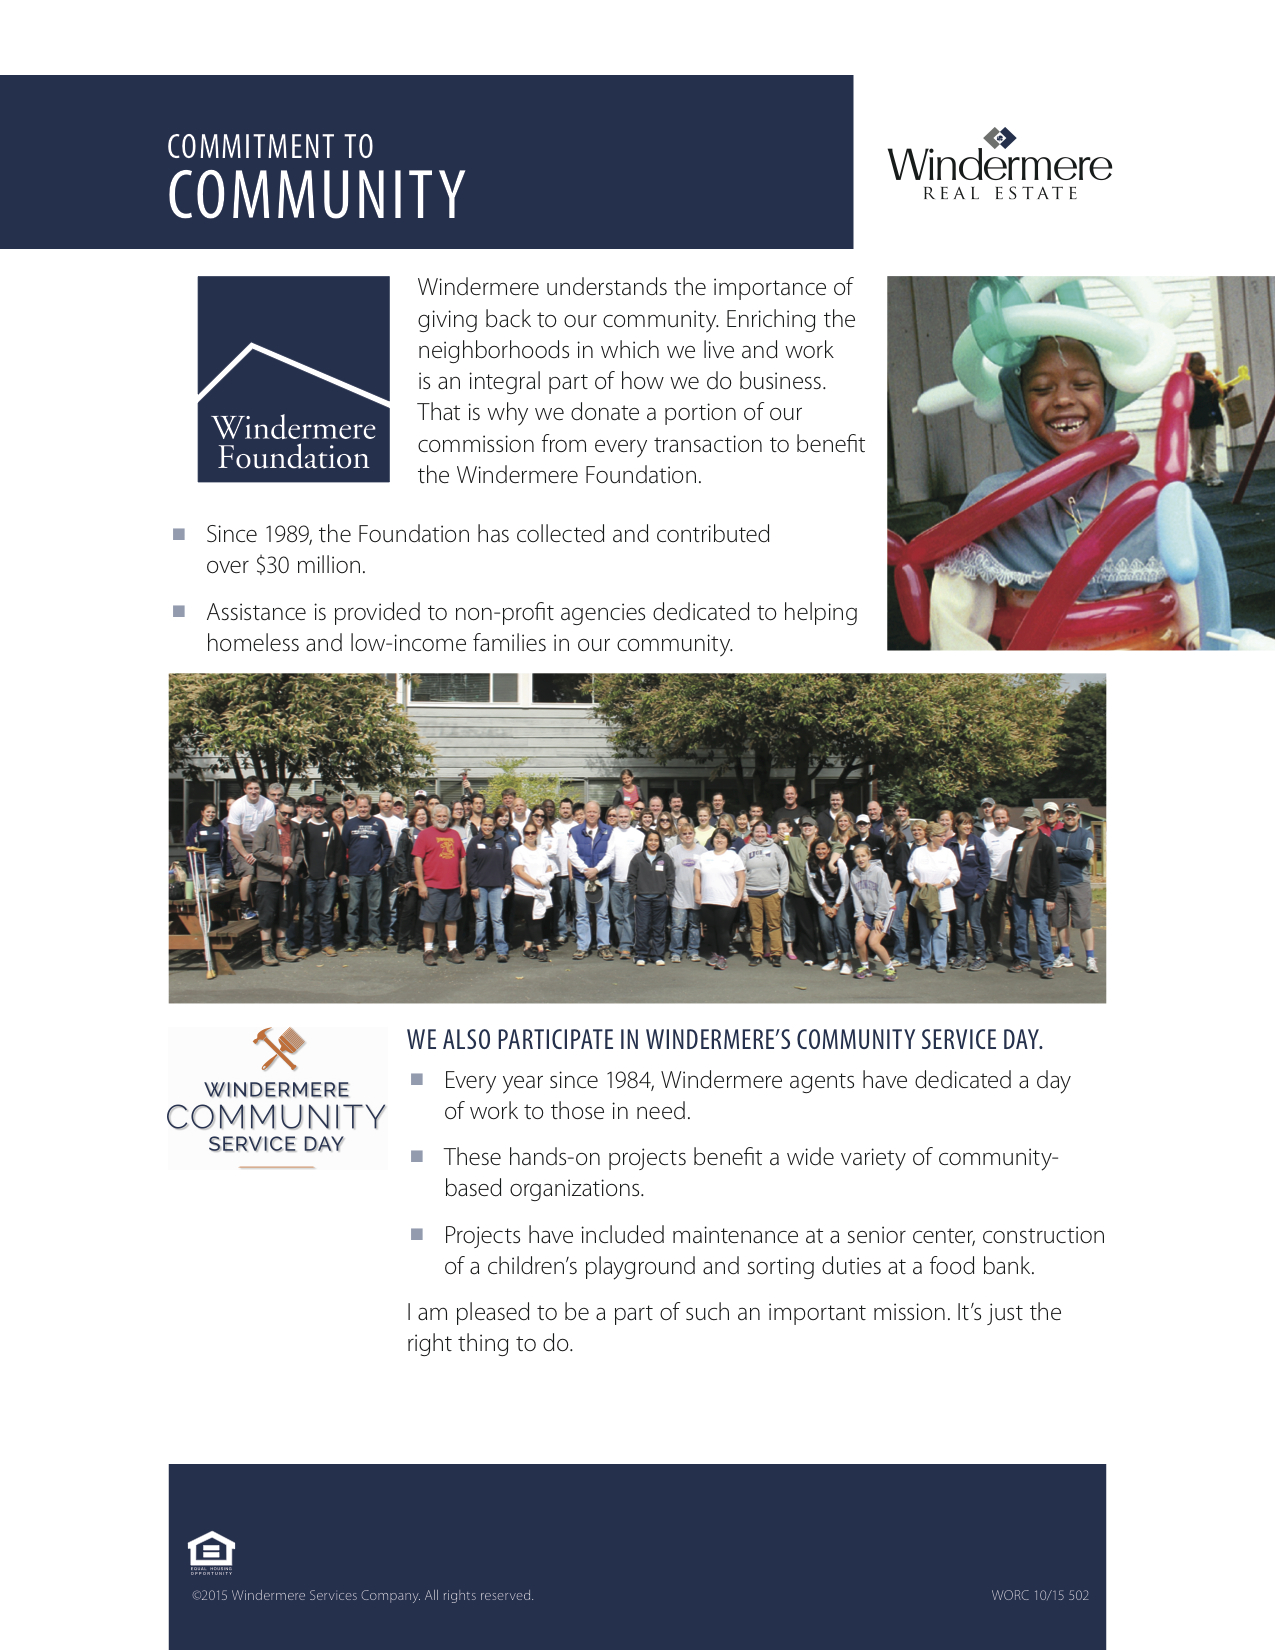 502 Commitment to Community-2